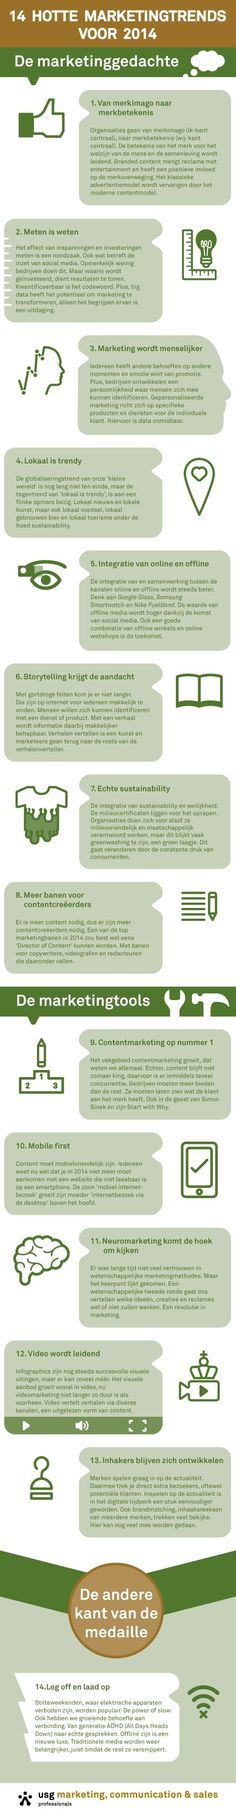 Food infographic  14 hotte marketingtrends voor 2014 | Marketingfacts